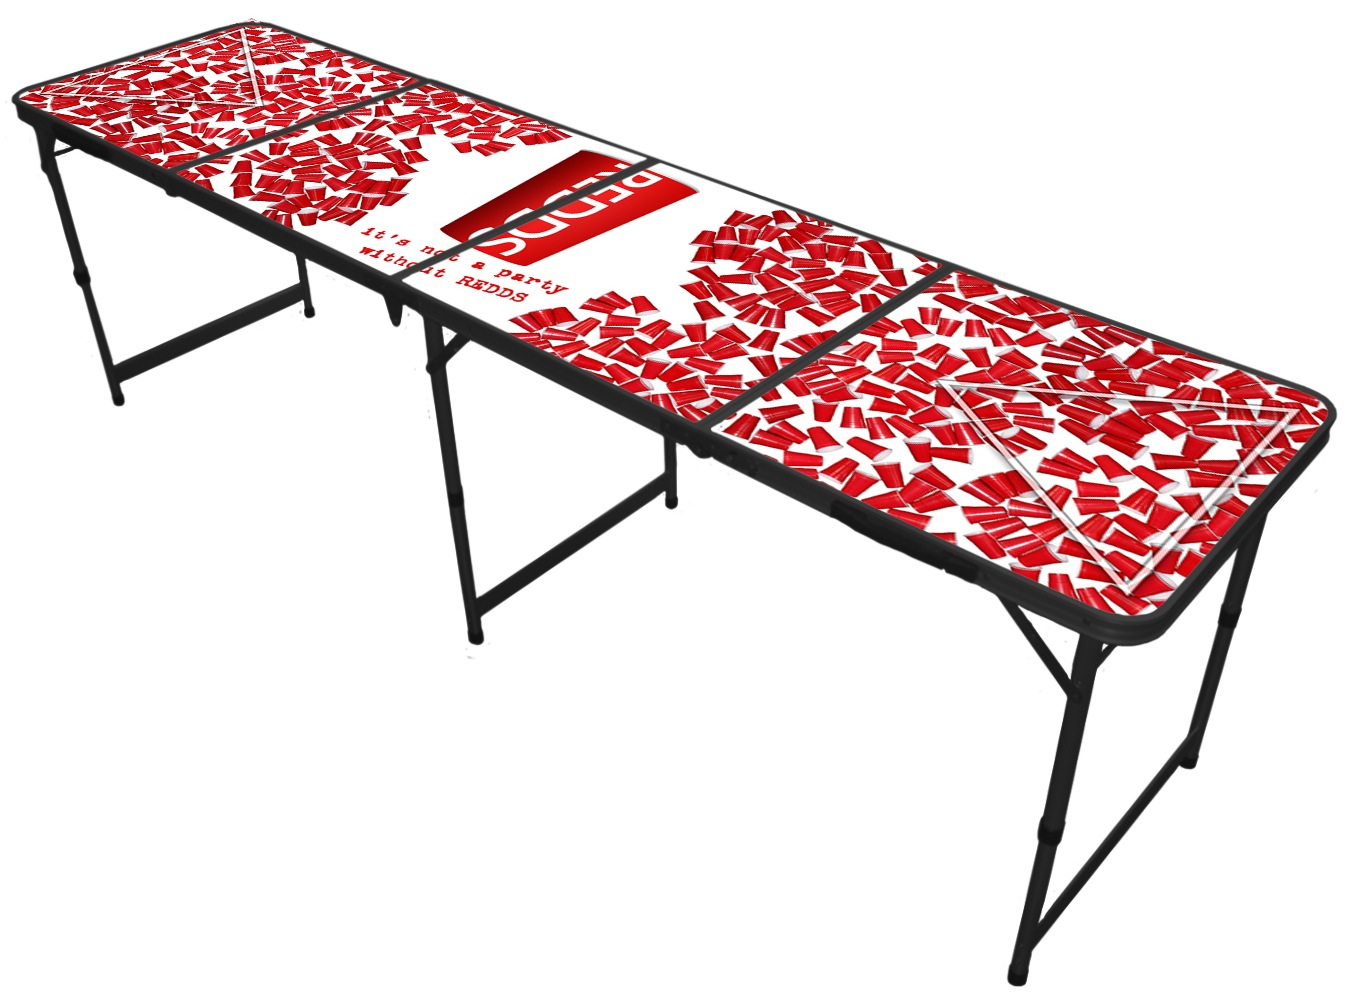 REDDS beer pong table